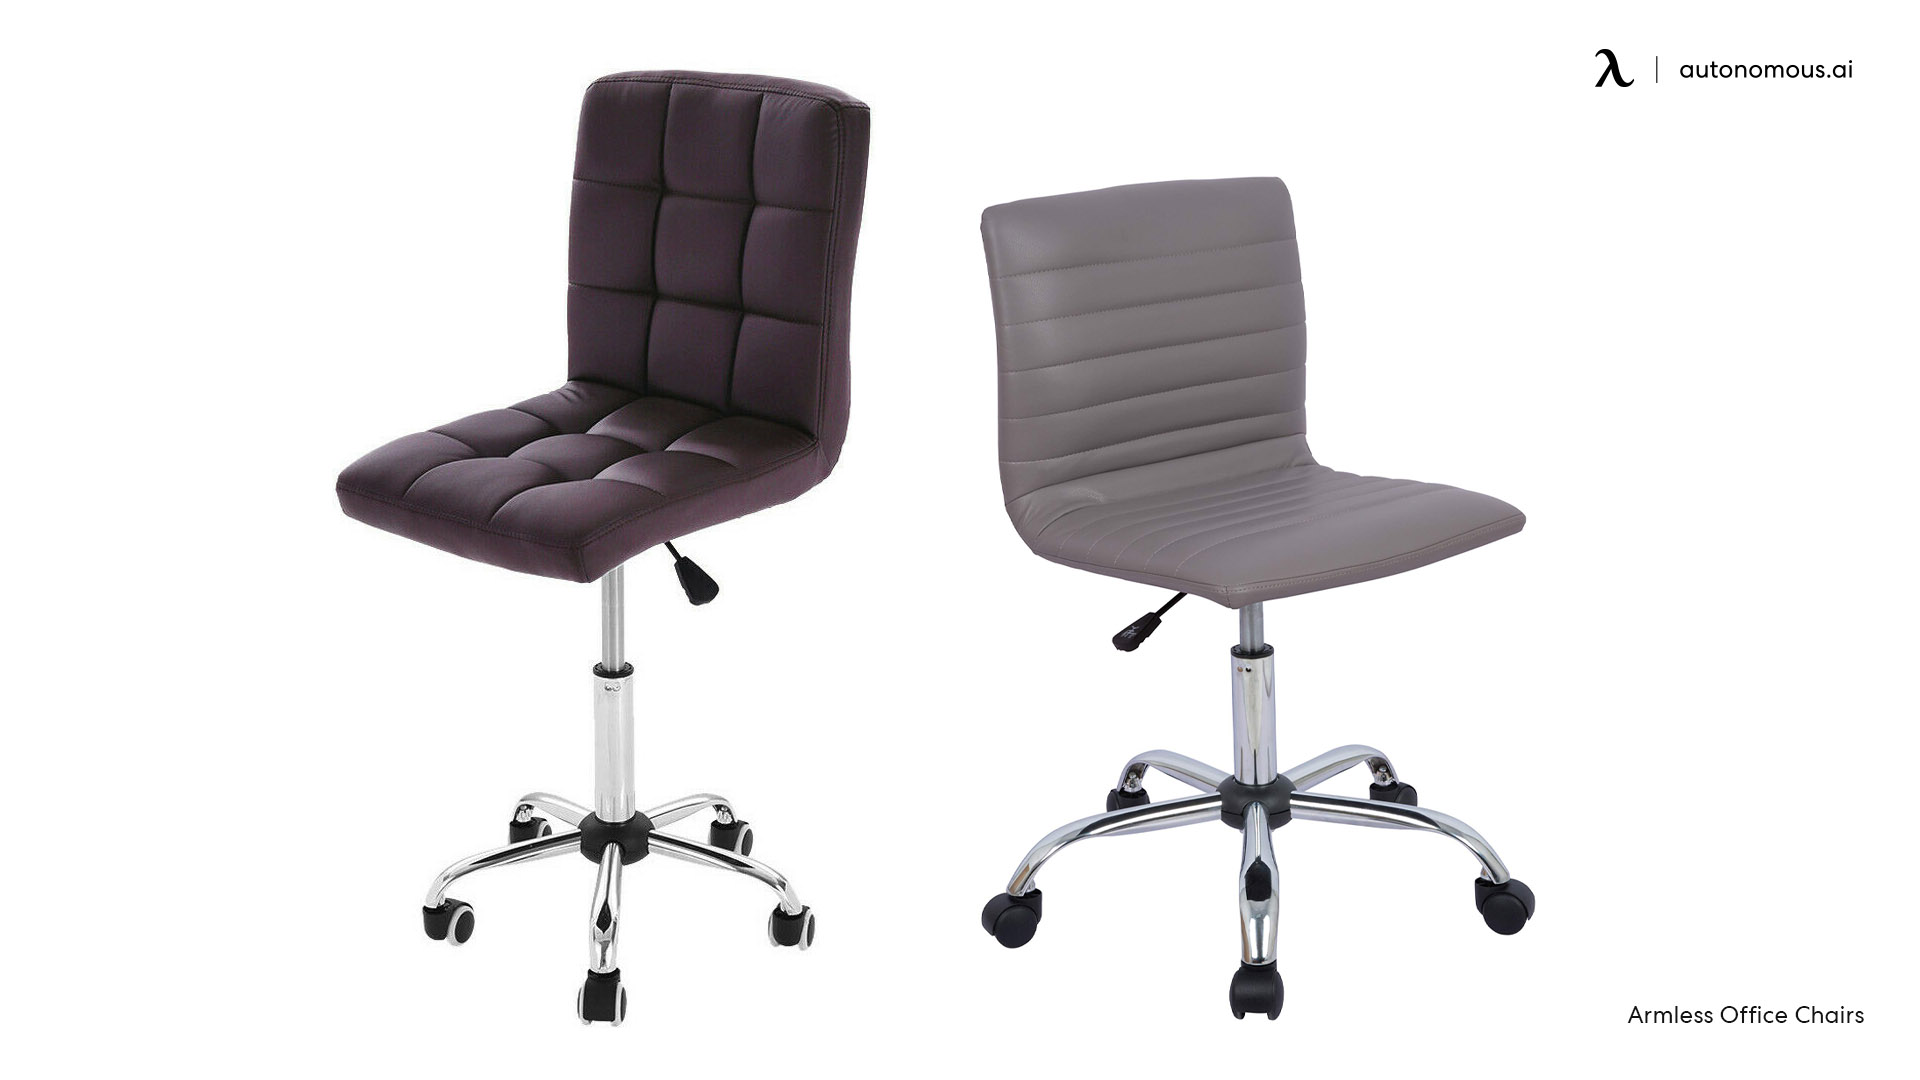 Photo of Armless Office Chairs